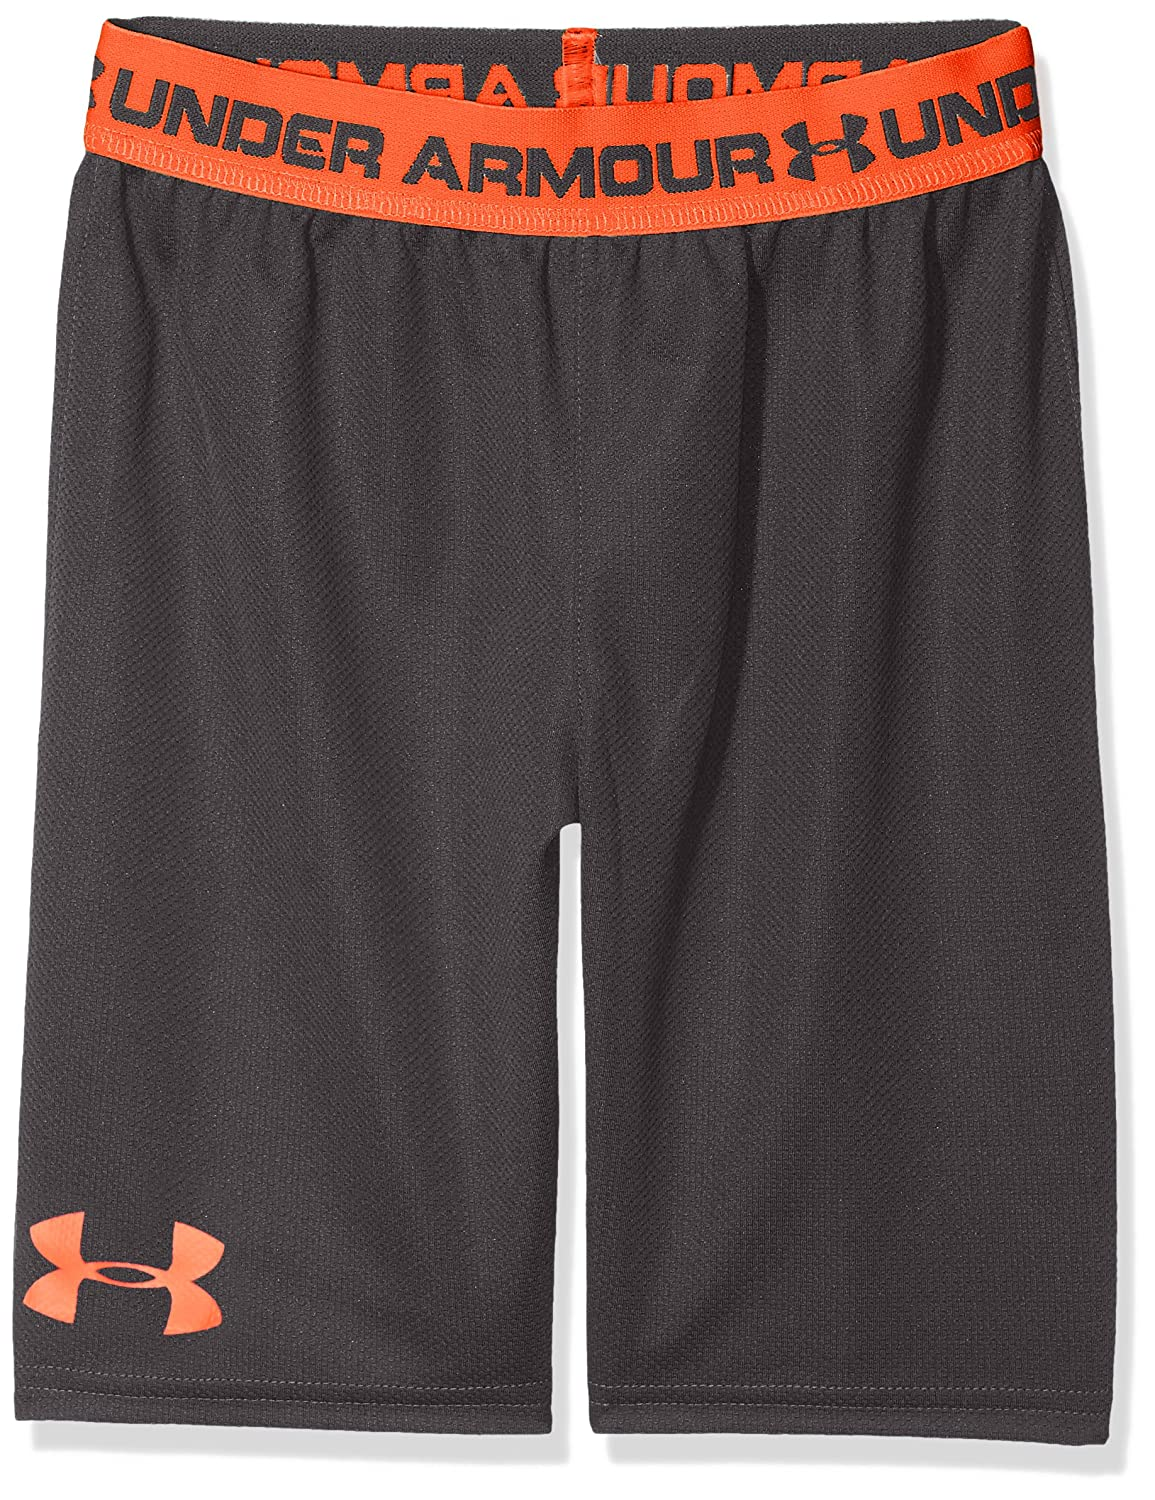 Pantaloncino Under Armour Bambino Tech Prototype Short 2.0